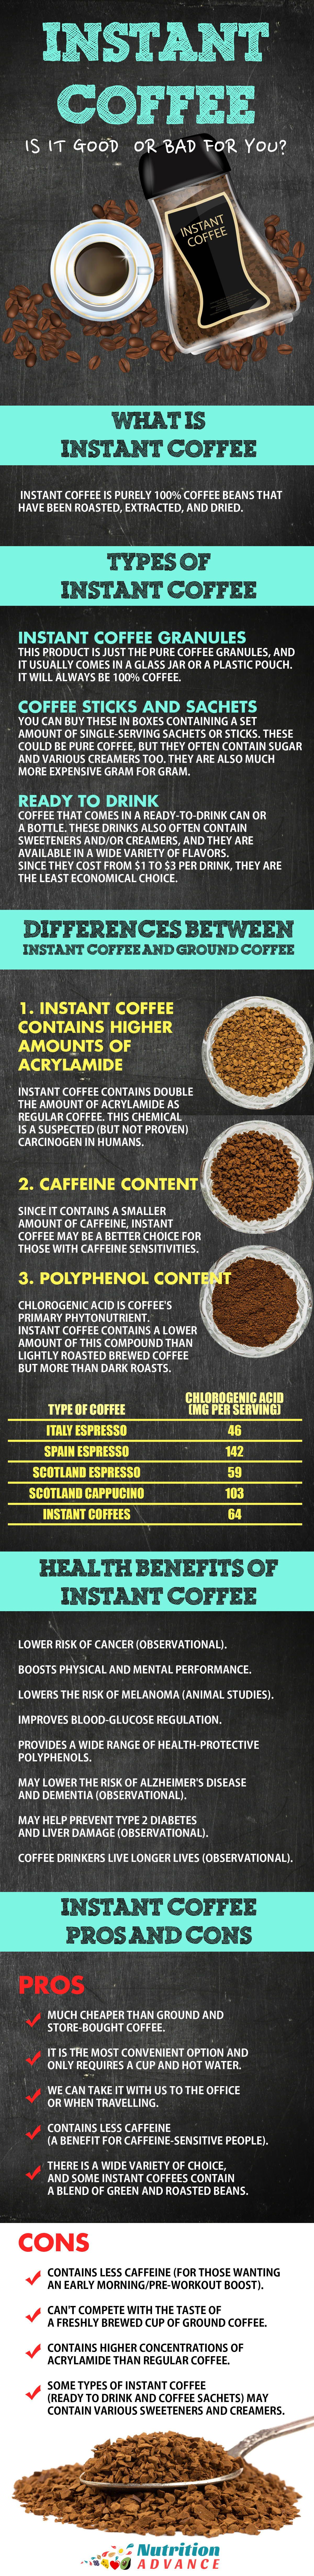 Instant Coffee Is It Good or Bad For You? Instant